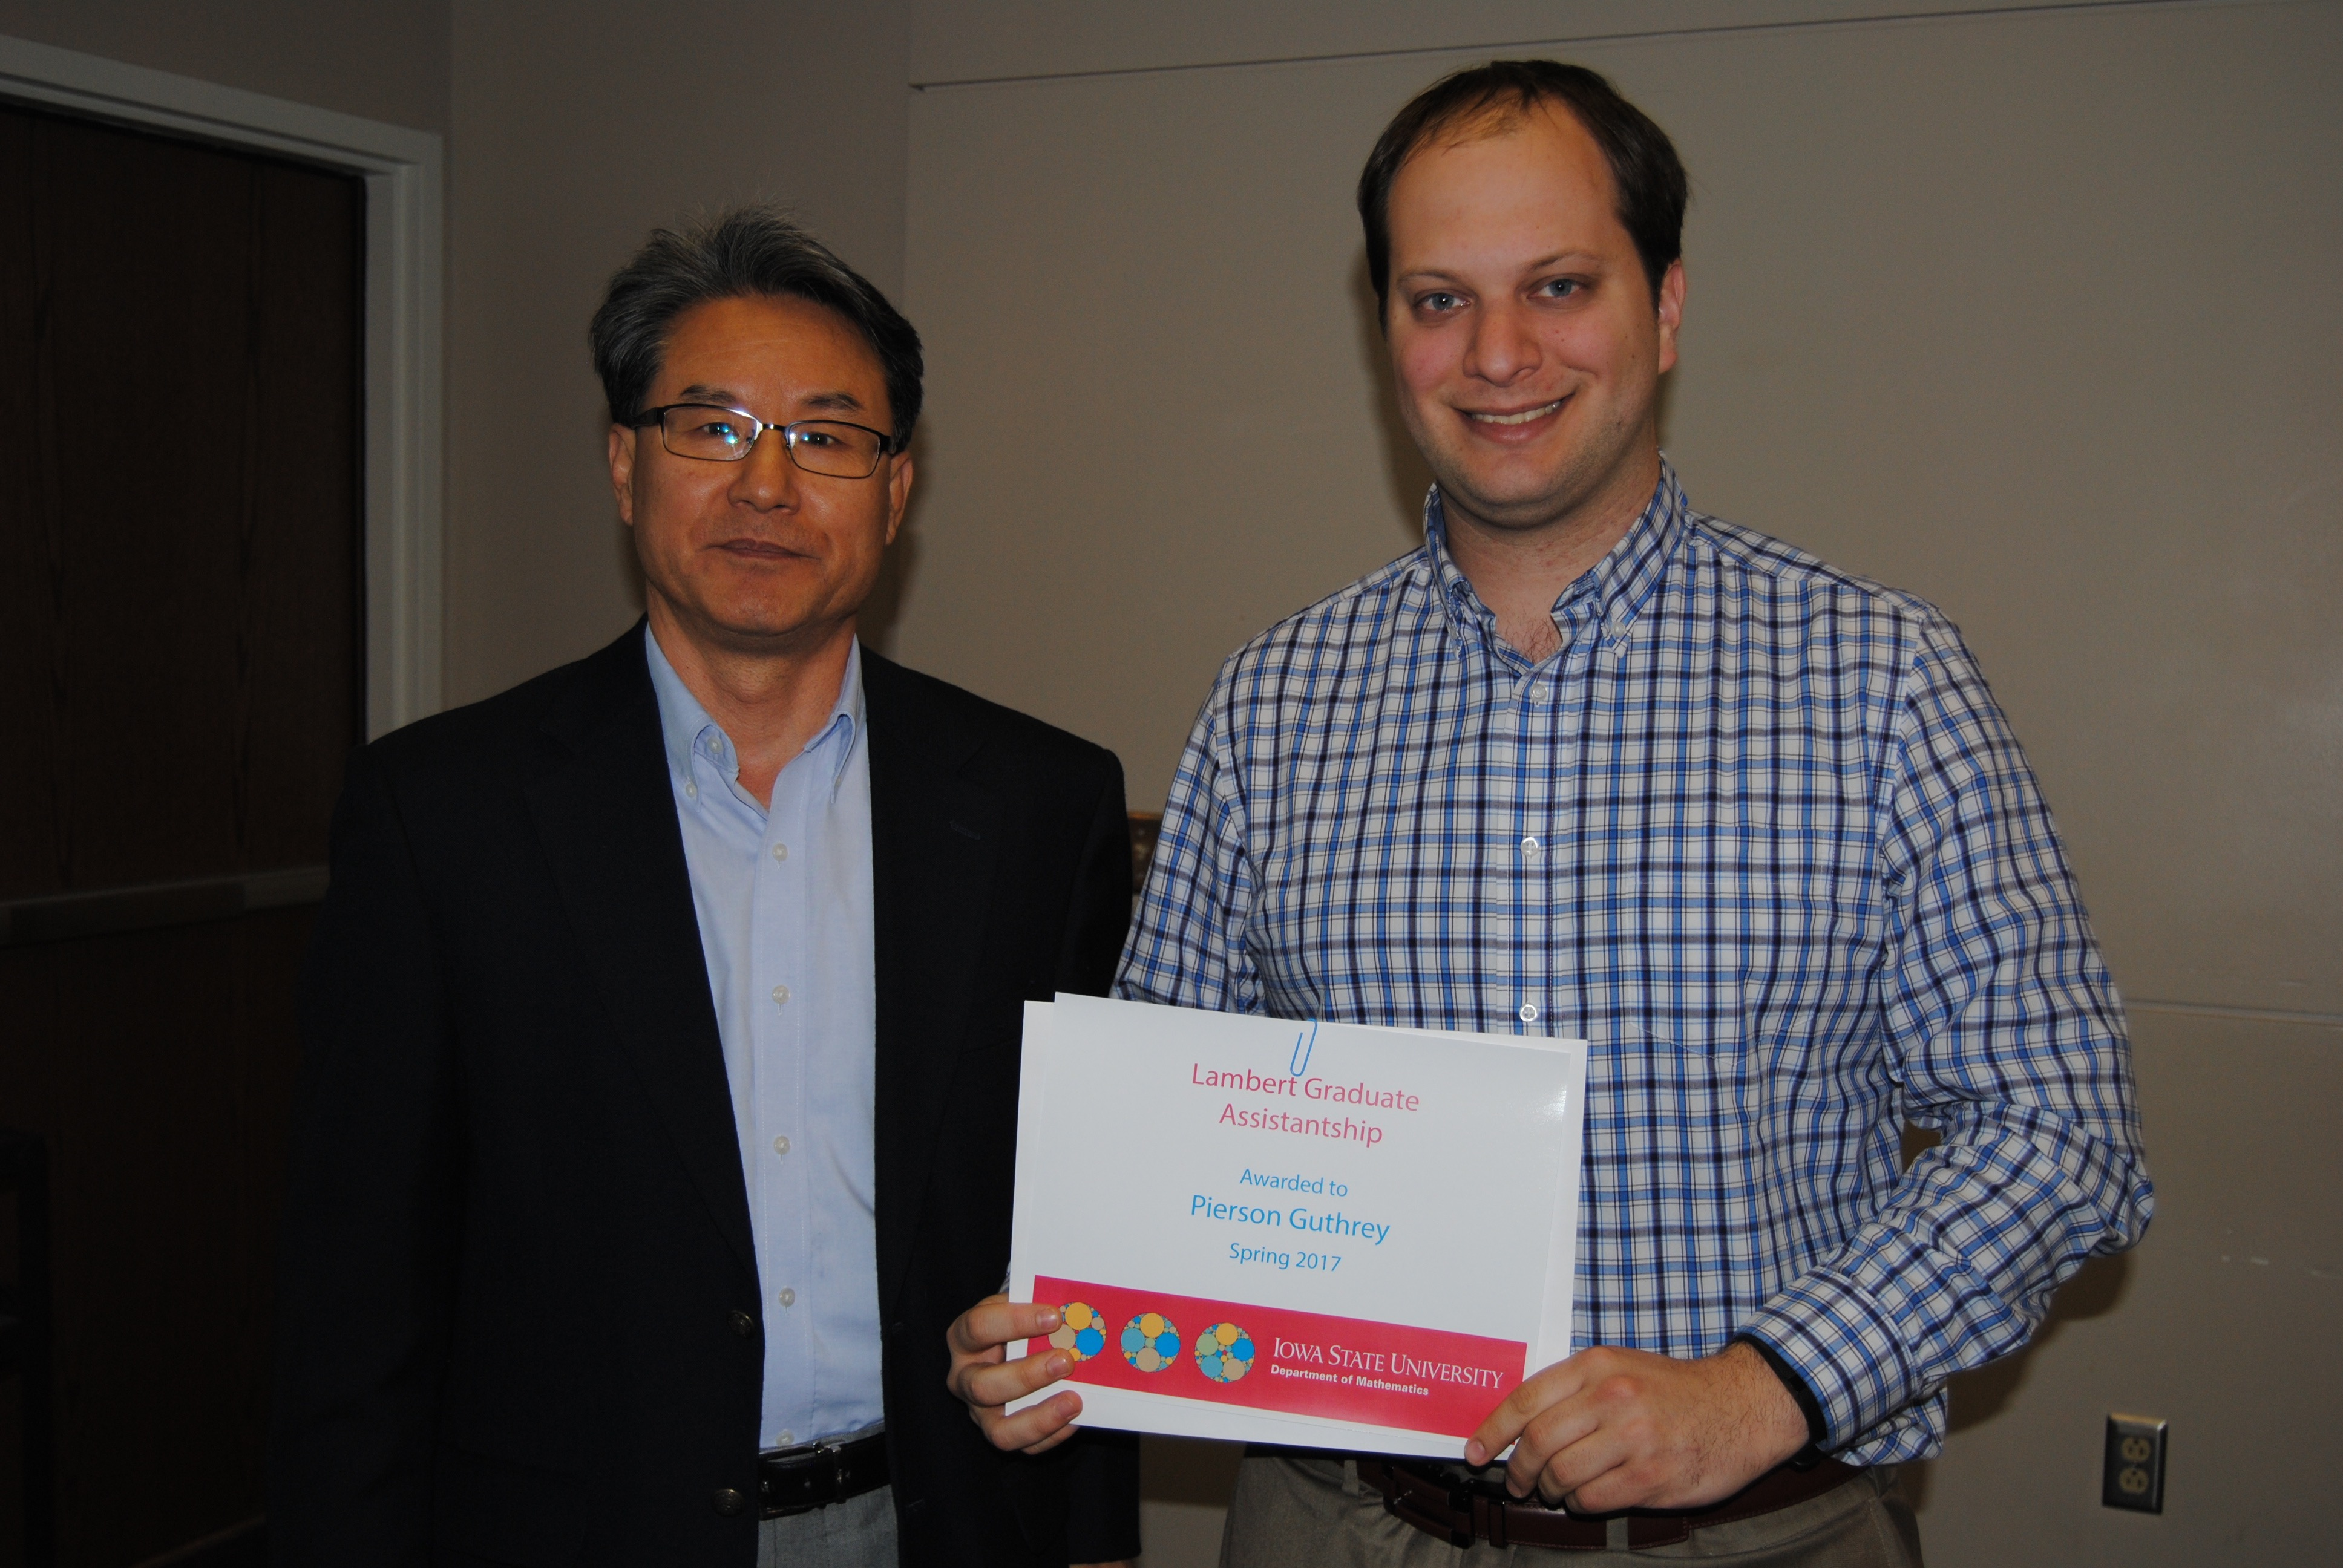 Sung-Yell Song, associate professor of mathematics, presents graduate student Pierson Guthrey with a certificate for the Lamber Graduate Assistantship.